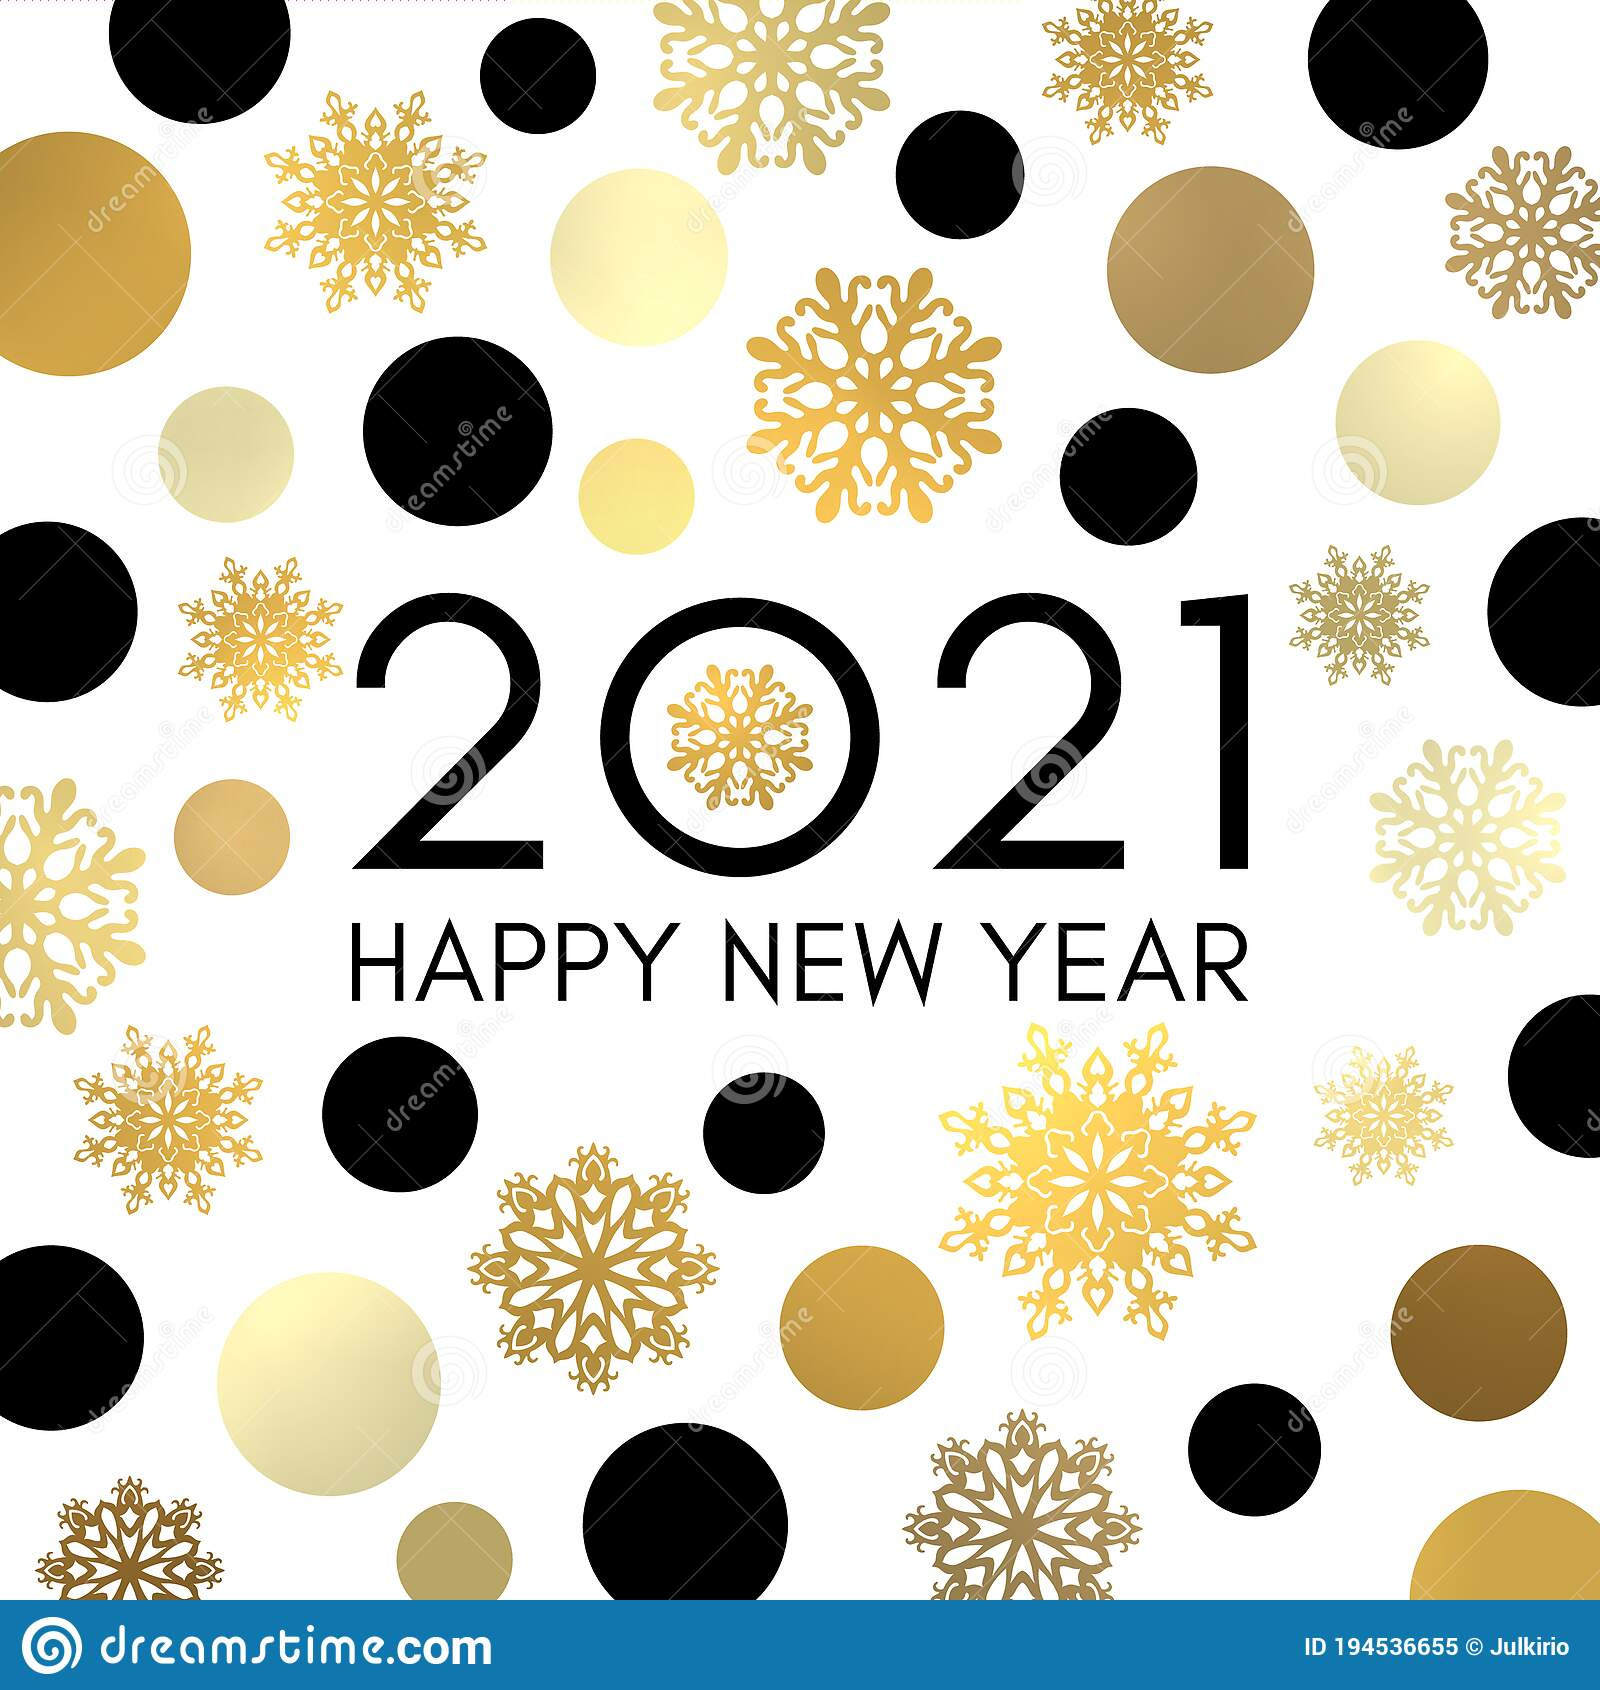 2021 Happy New Year Banner Or Greeting Card Design Stock Vector Illustration Of Decoration Greeting 194536655